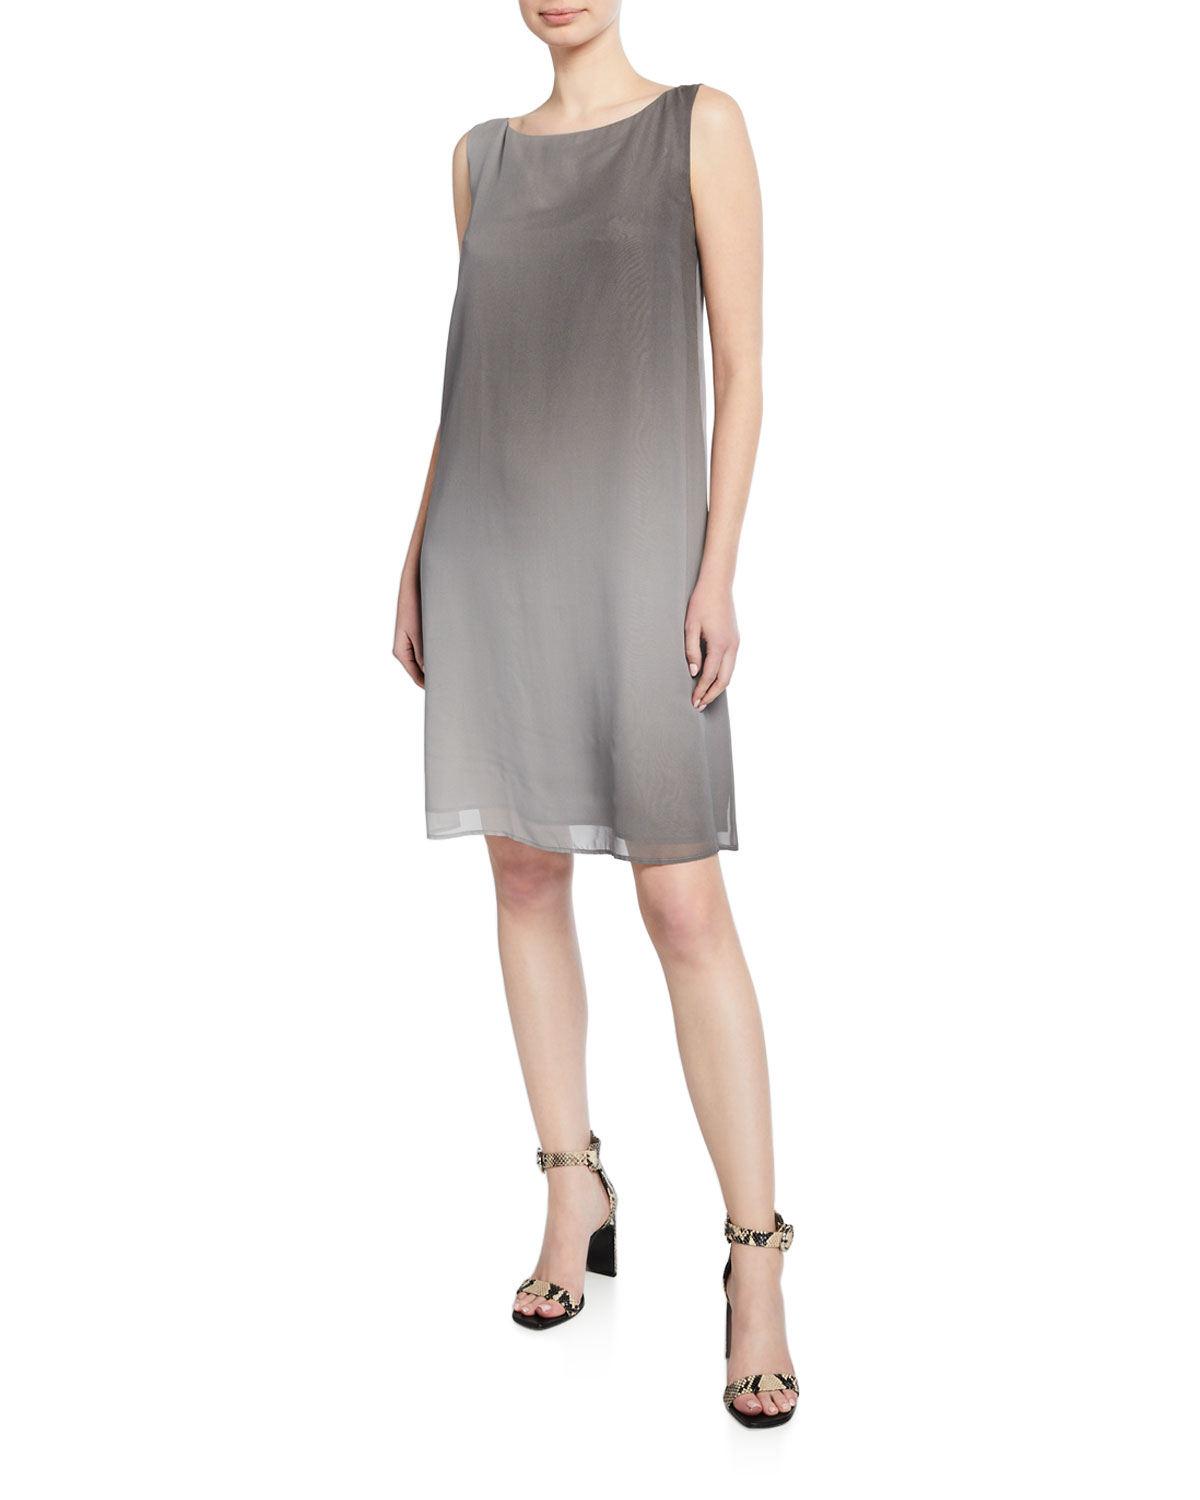 80f9d175f2062 Eileen Fisher Plus Size Watercolor Sheer Sleeveless Shift Dress ...